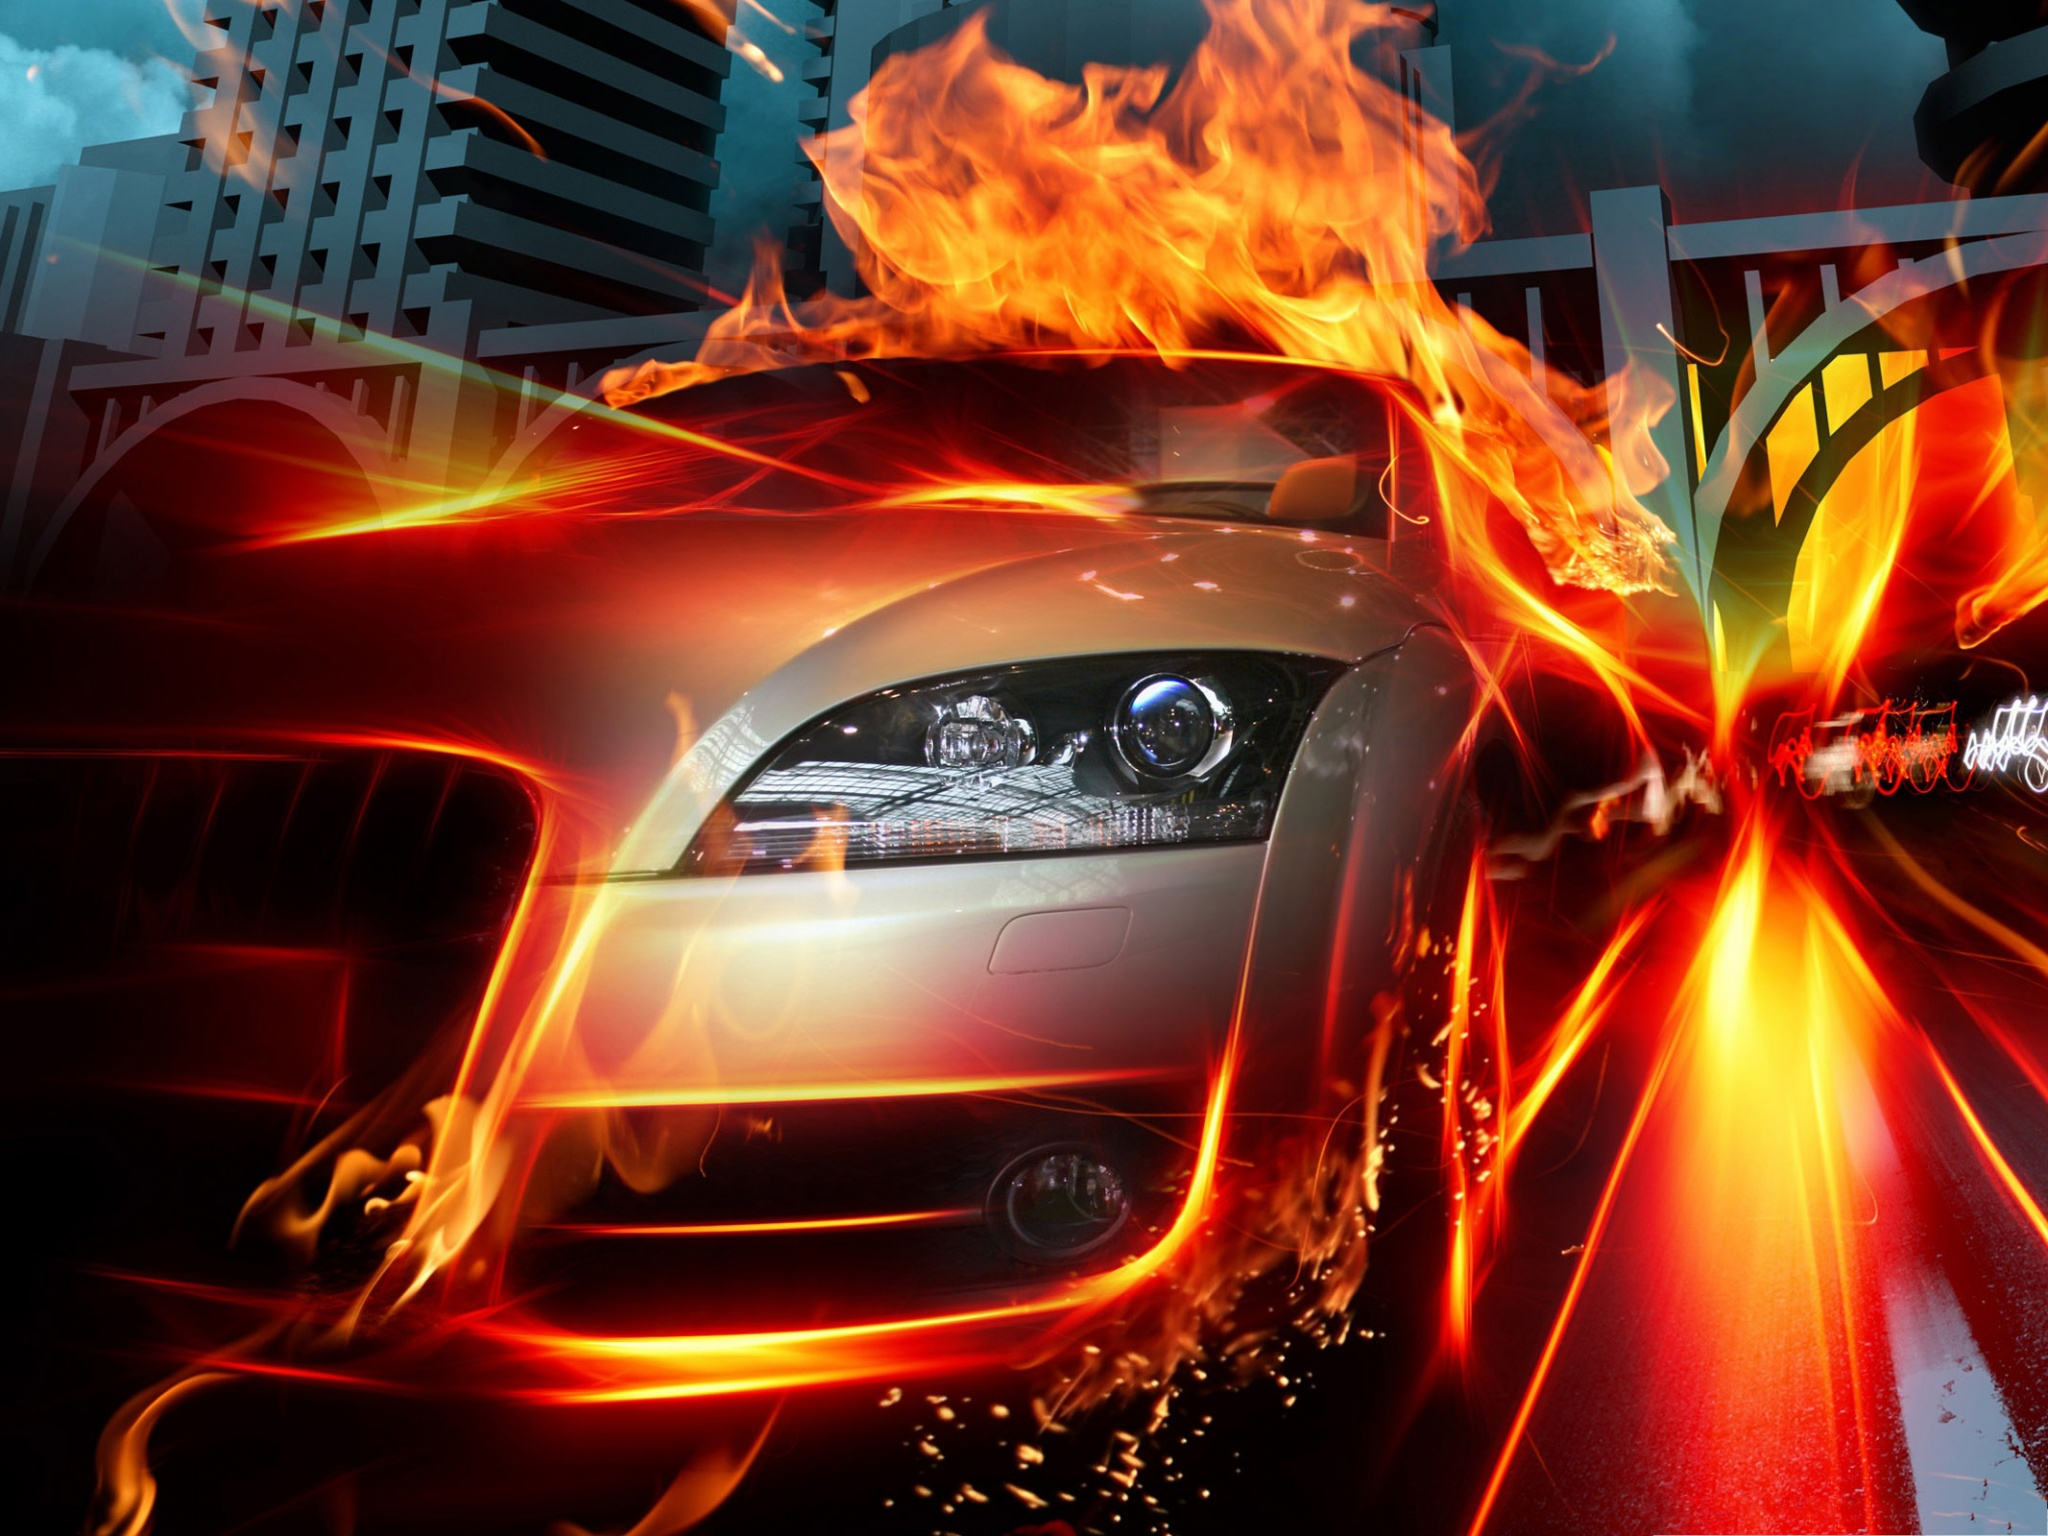 Wallpaper Hd Ghost Rider Racing Car Background Silver Car On Fire Amazing And